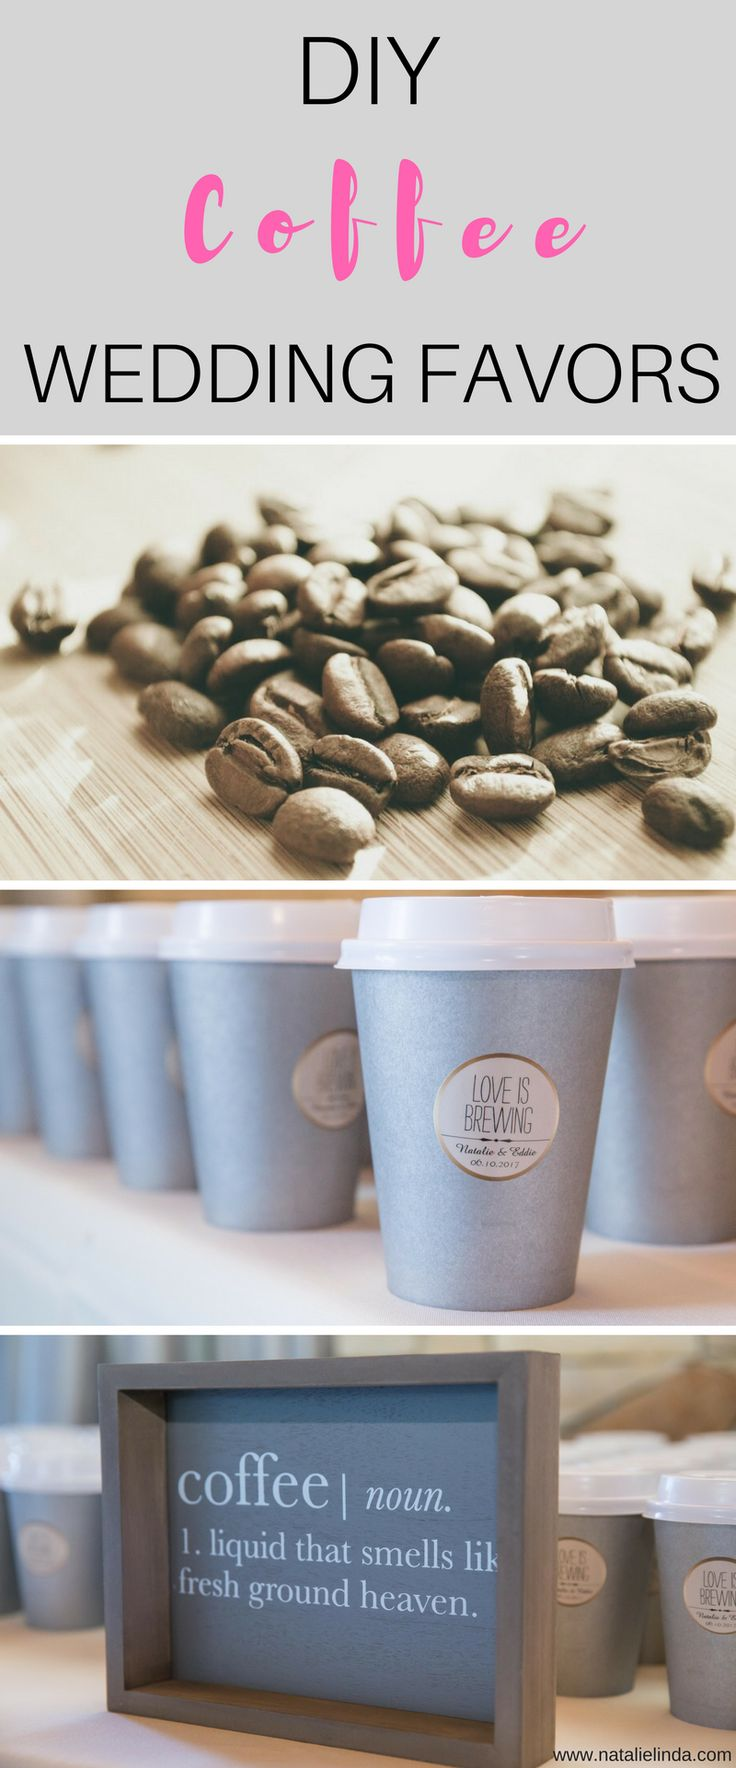 Coffee Wedding Favors Burlap Image Collections Images Decoration Ideas Best